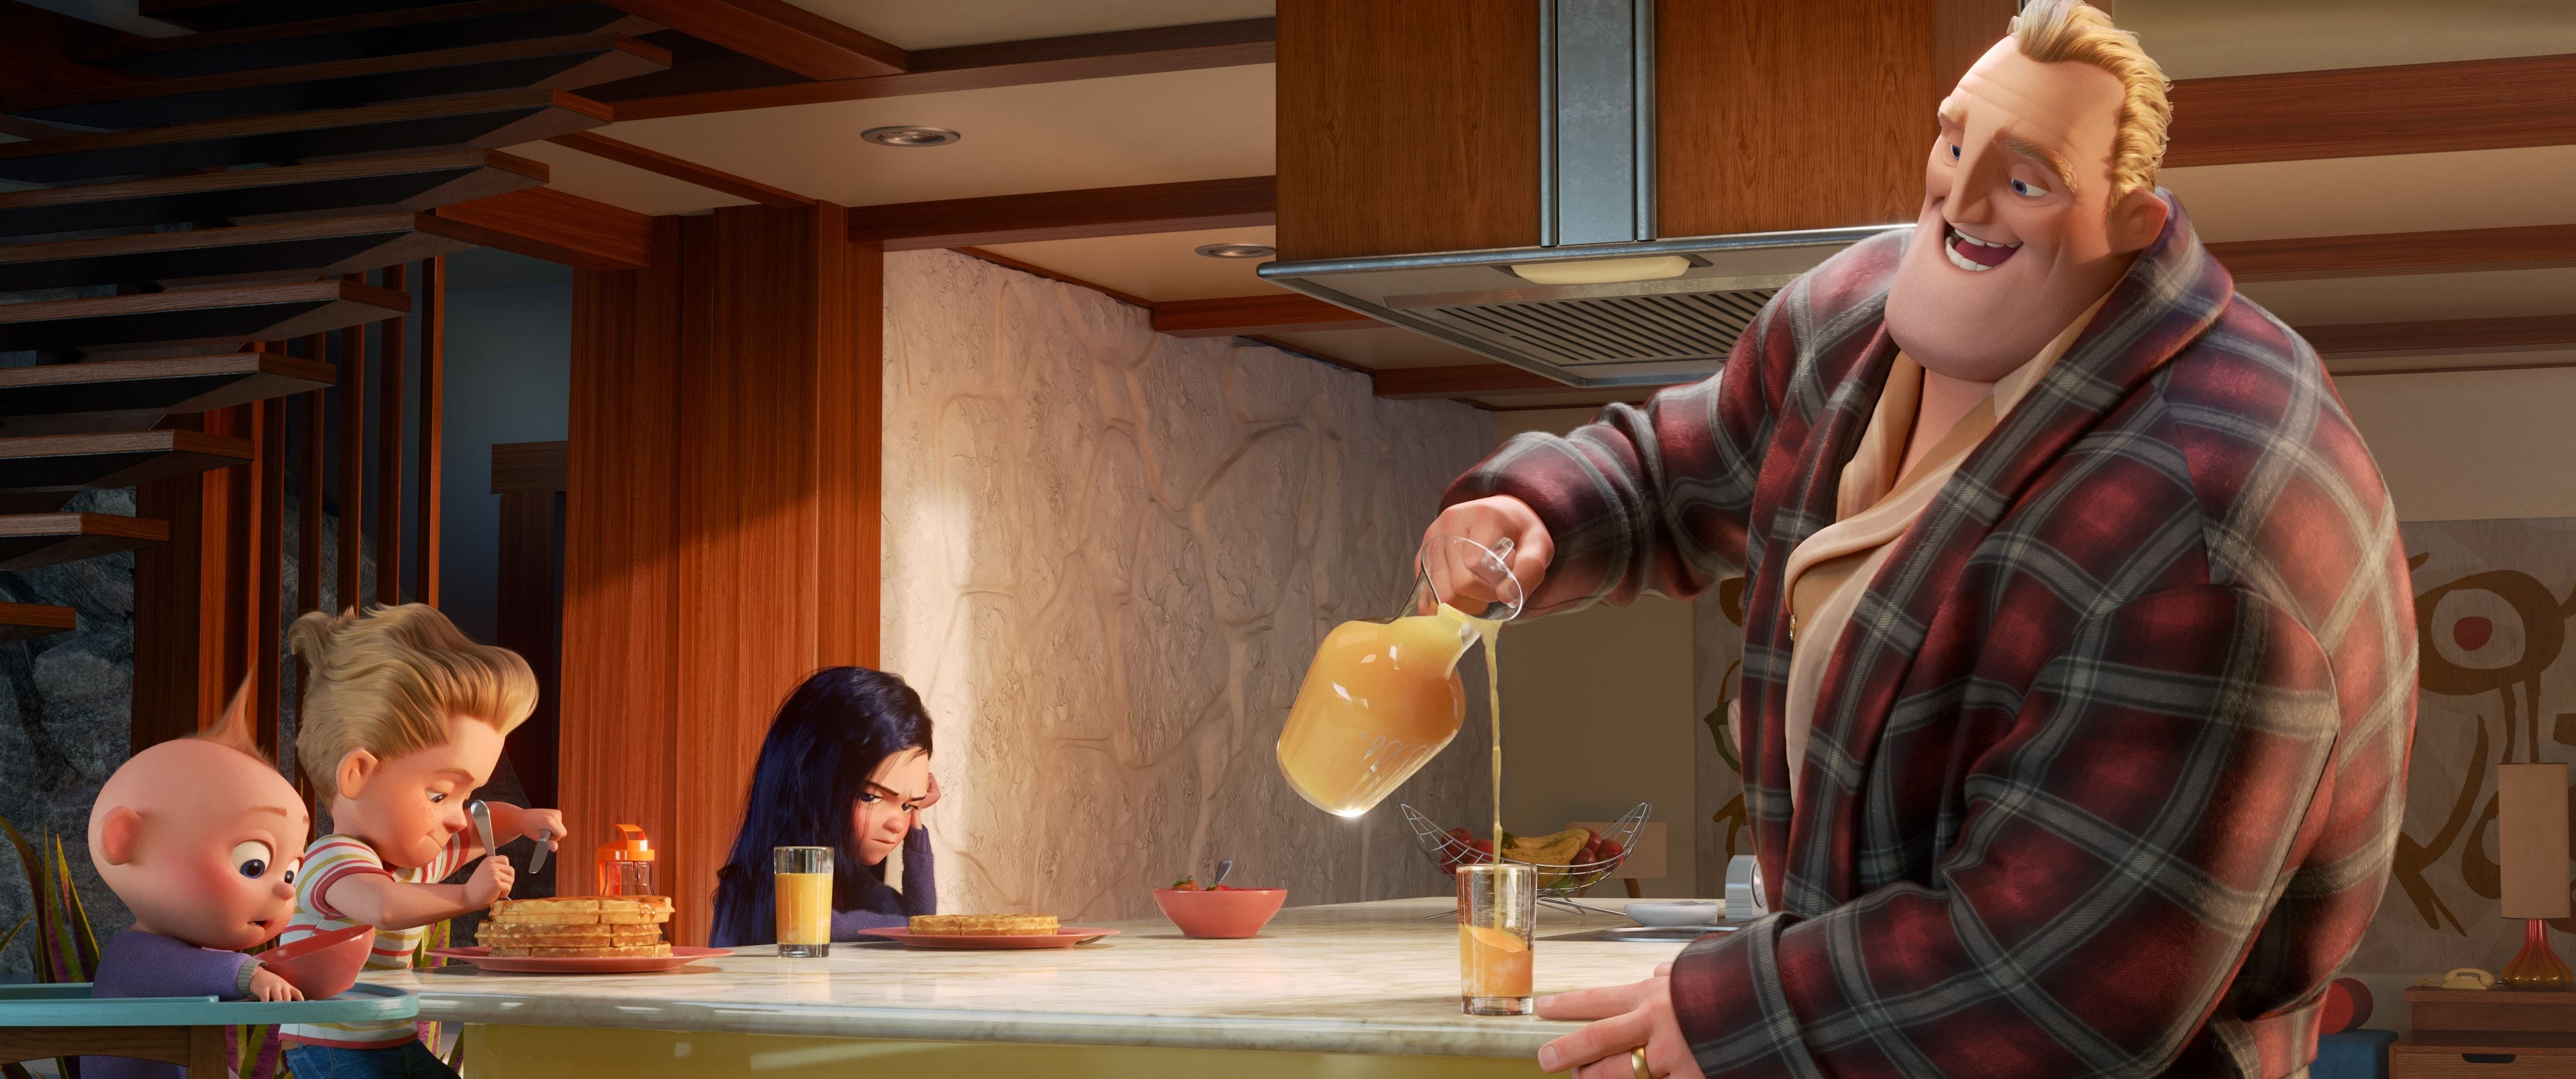 A father with blond hair pours orange juice in a kitchen for his 3 kids: a teen girl, a ten-year-old boy, and a baby